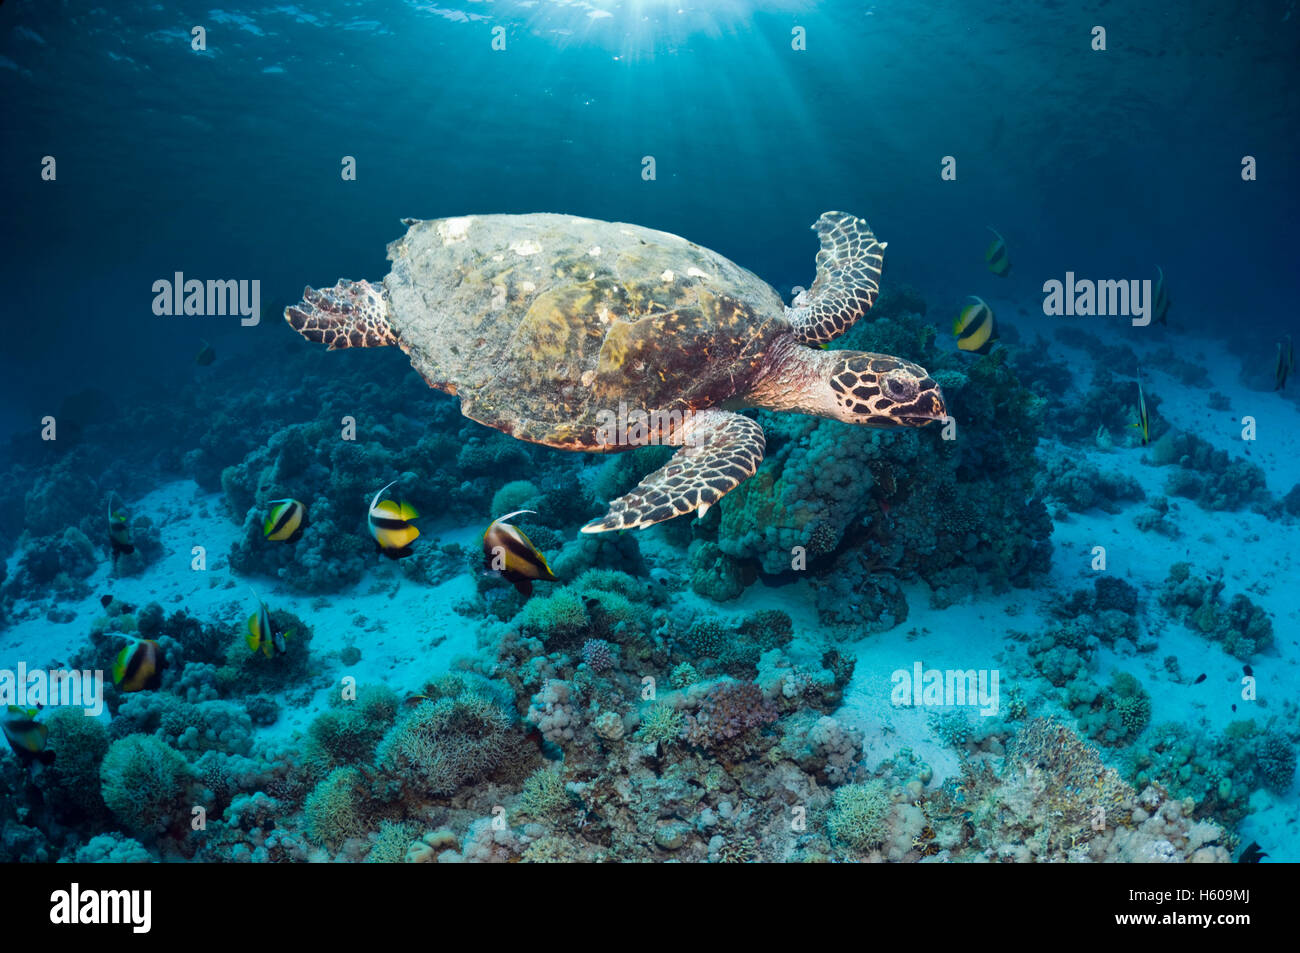 Hawksbill turtle (Eretmochelys imbricatta) swimming over coral reef with shafts of sunlight.  Egypt, Red Sea. - Stock Image